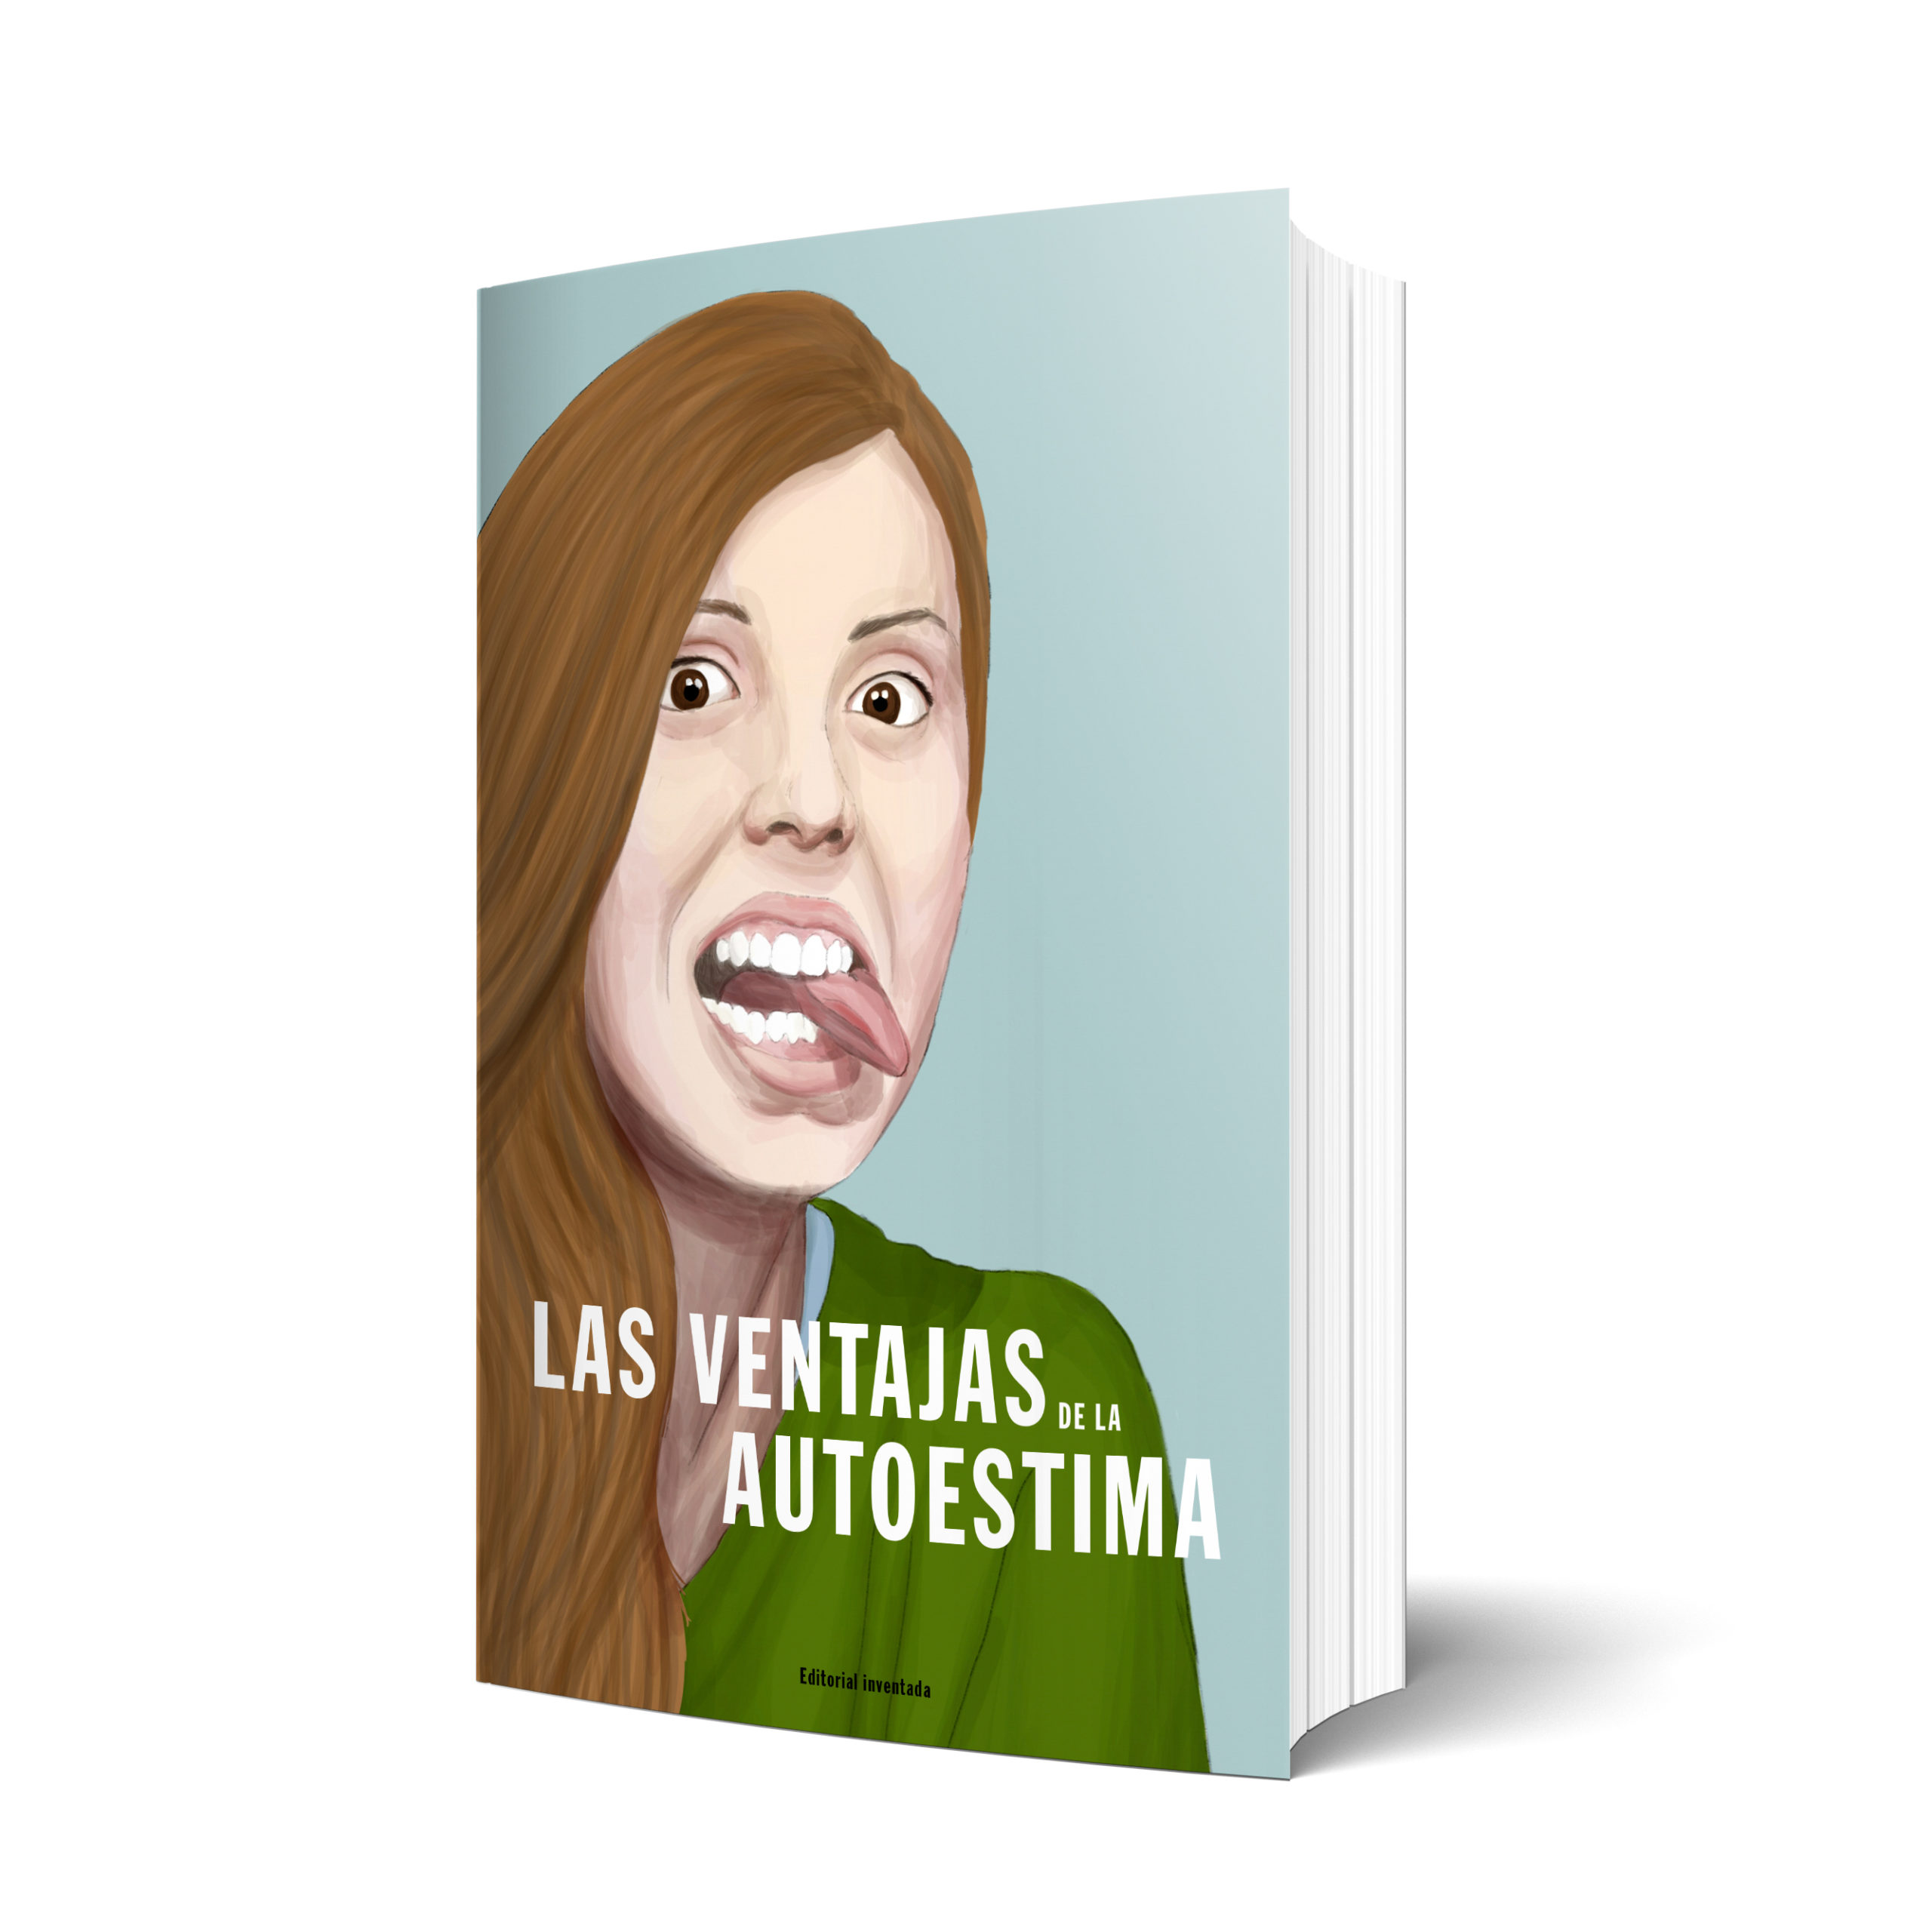 Book cover illustration of a young woman with her tongue outside. Digital illustration similar to watercolor, realistic. self-esteem.